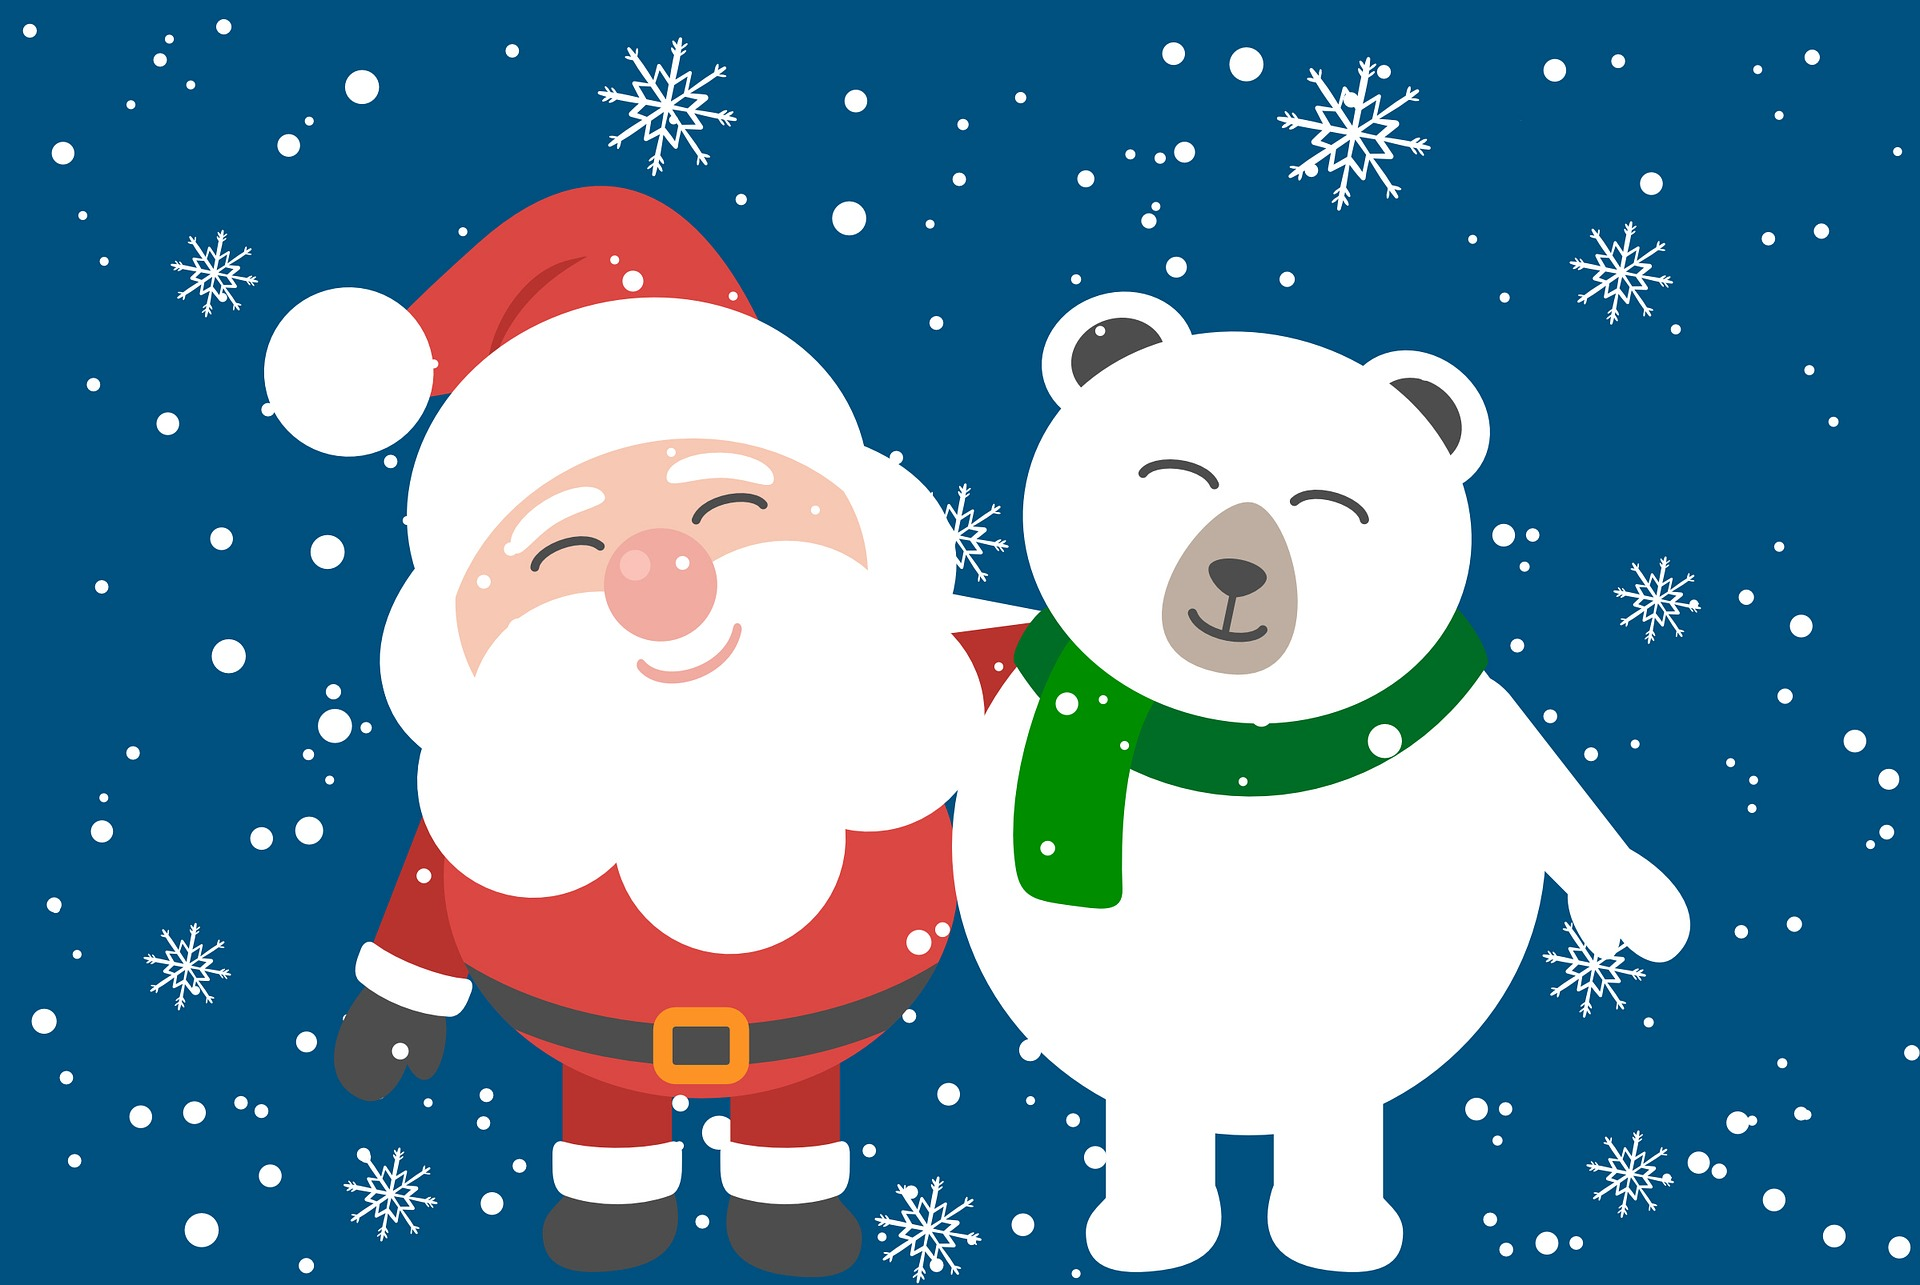 download wallpaper: De Kerstman en een poolbeer wallpaper